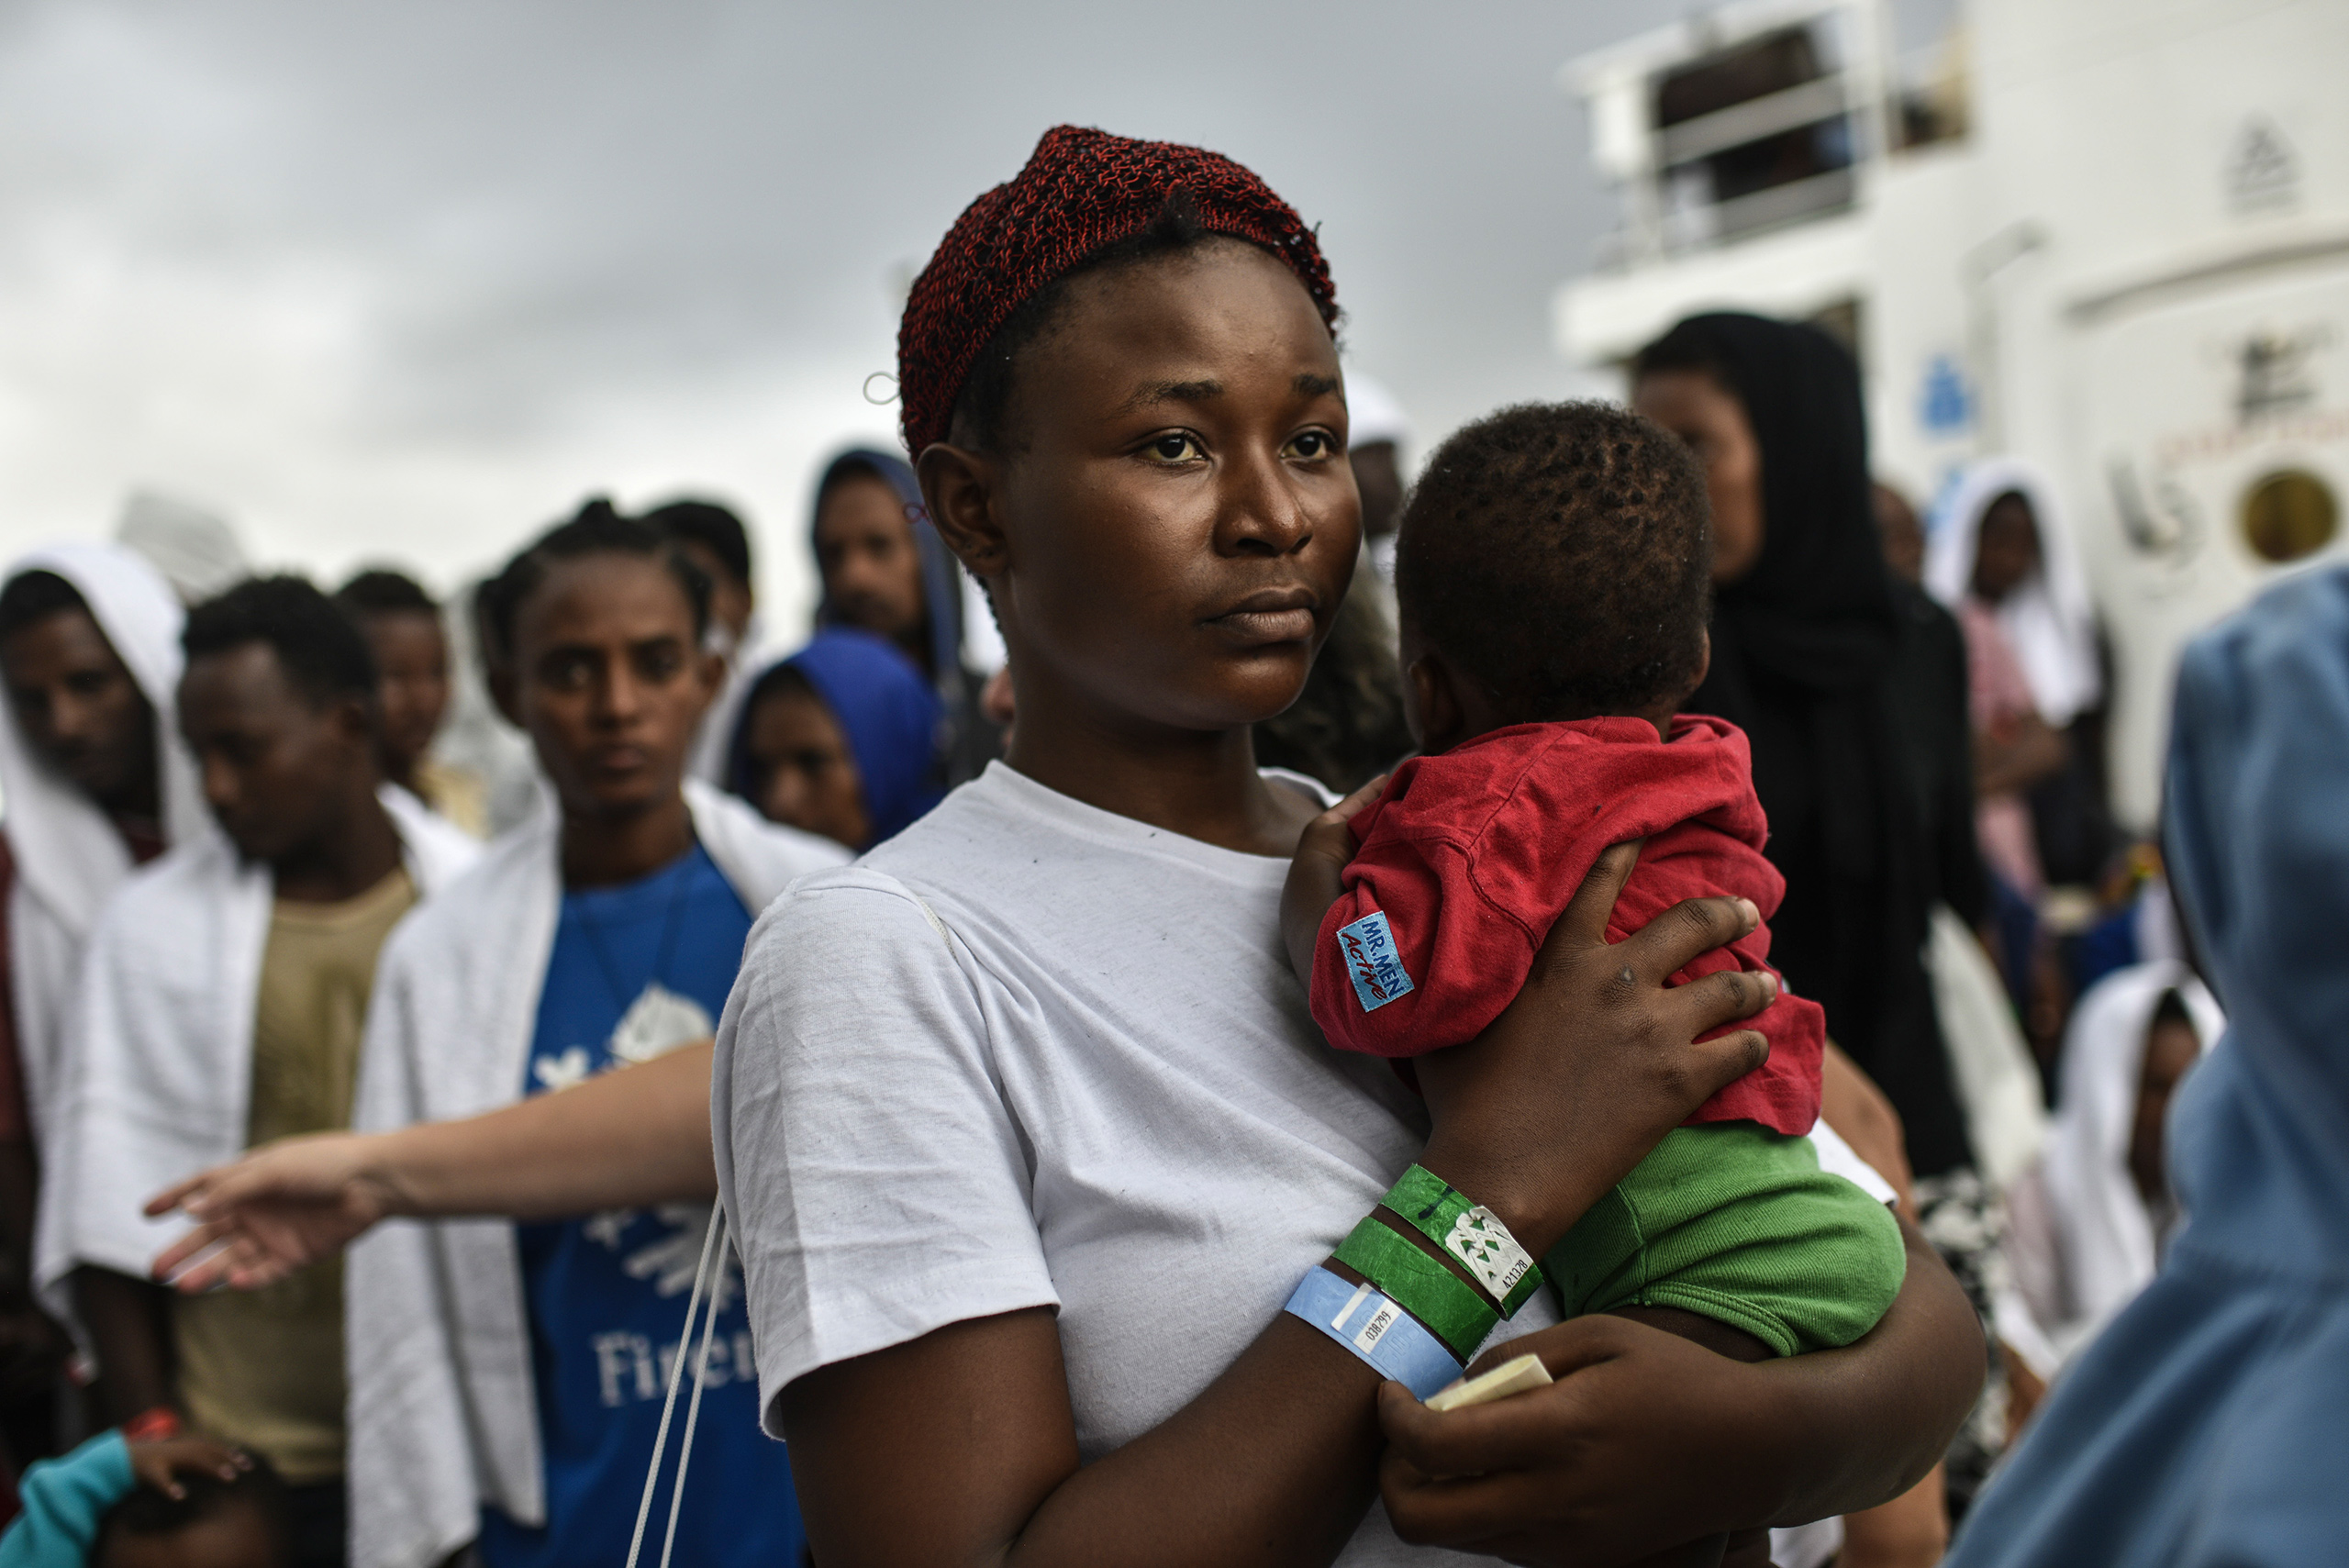 A Nigerian migrant, Goodness, age 20, holds her young daughter Destiny, as she waits to disembark at the Catania port, Sicily, Aug. 23, 2016.